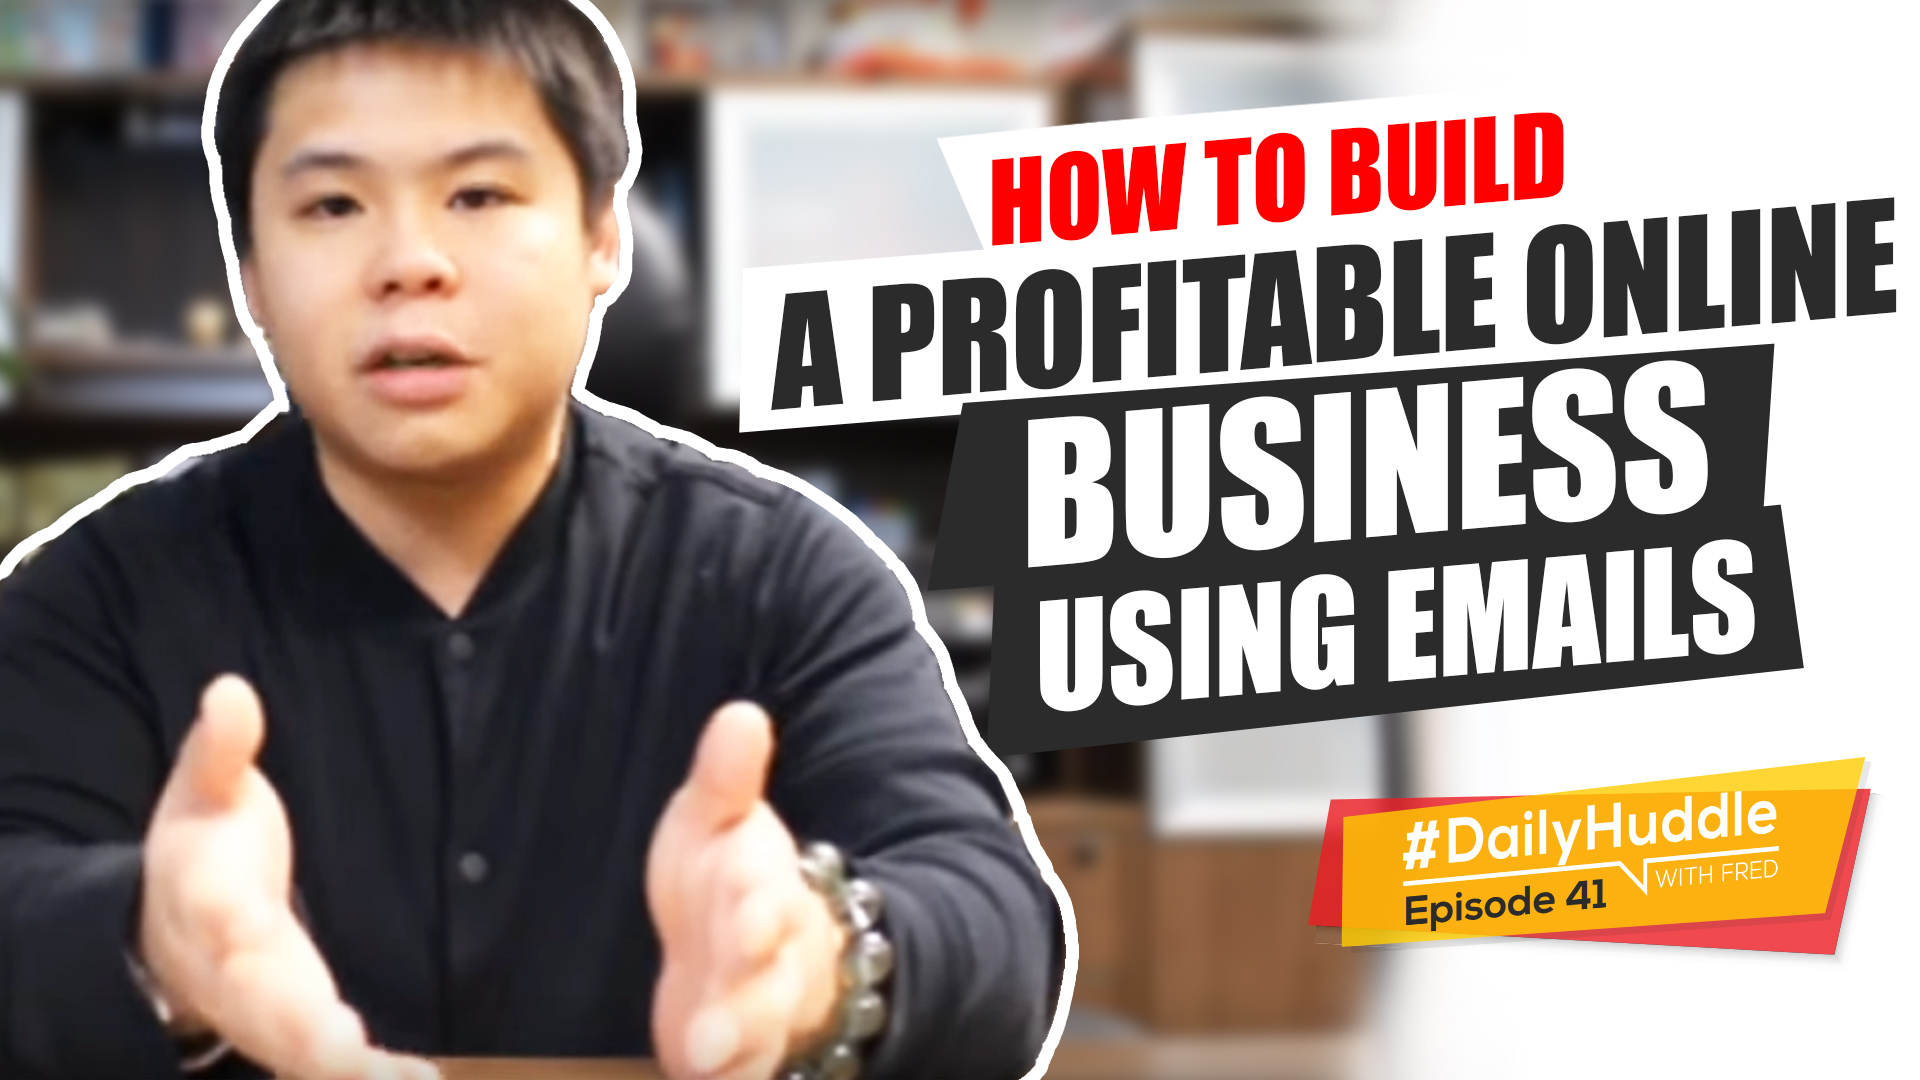 Daily Huddle - Ep 41 | How To Build A PROFITABLE Online Business Using EMAILS